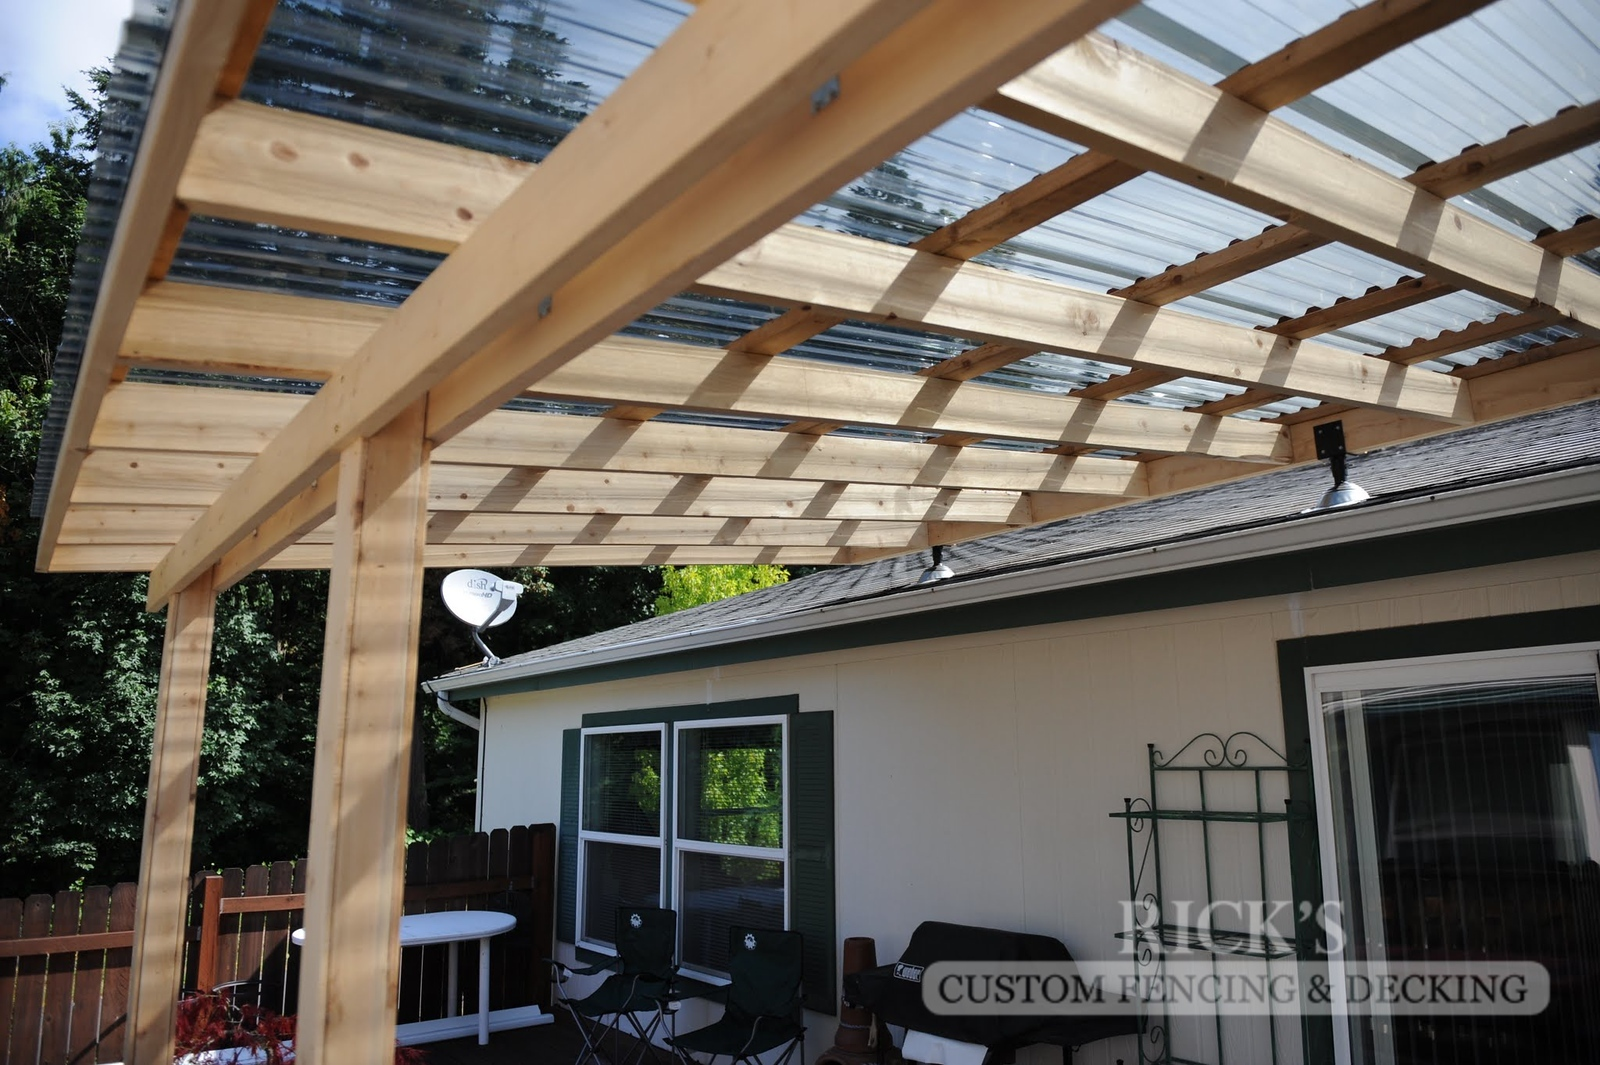 5132 - Wood-Framed Patio Cover with Acrylic Paneling